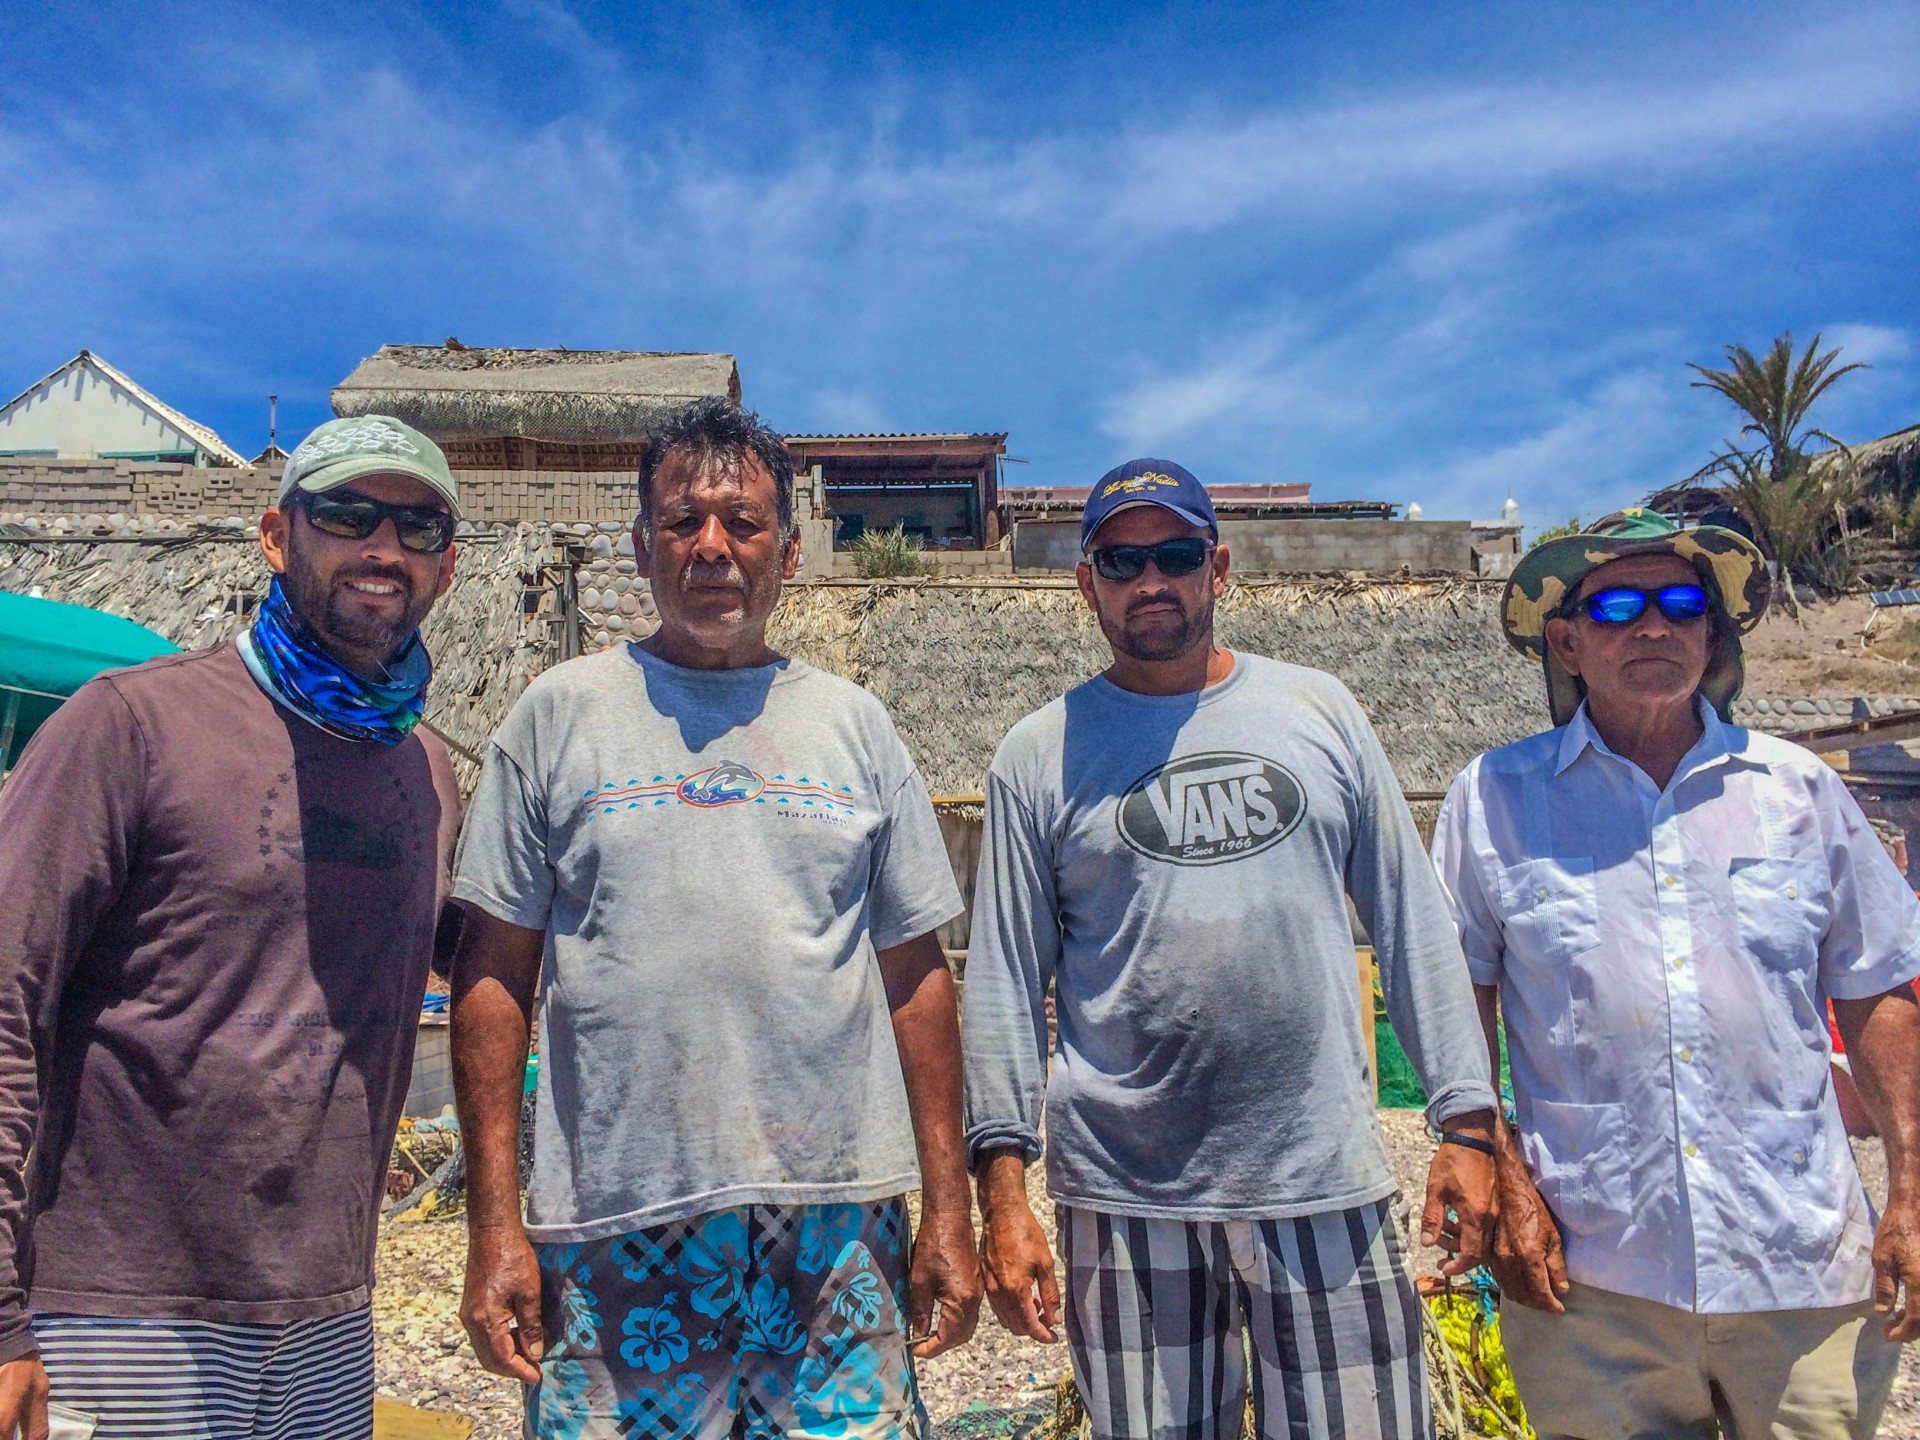 The men of Pardito. Pablo is on the right, Roberto second from the left, and the sons who arrived by panga are the other two.